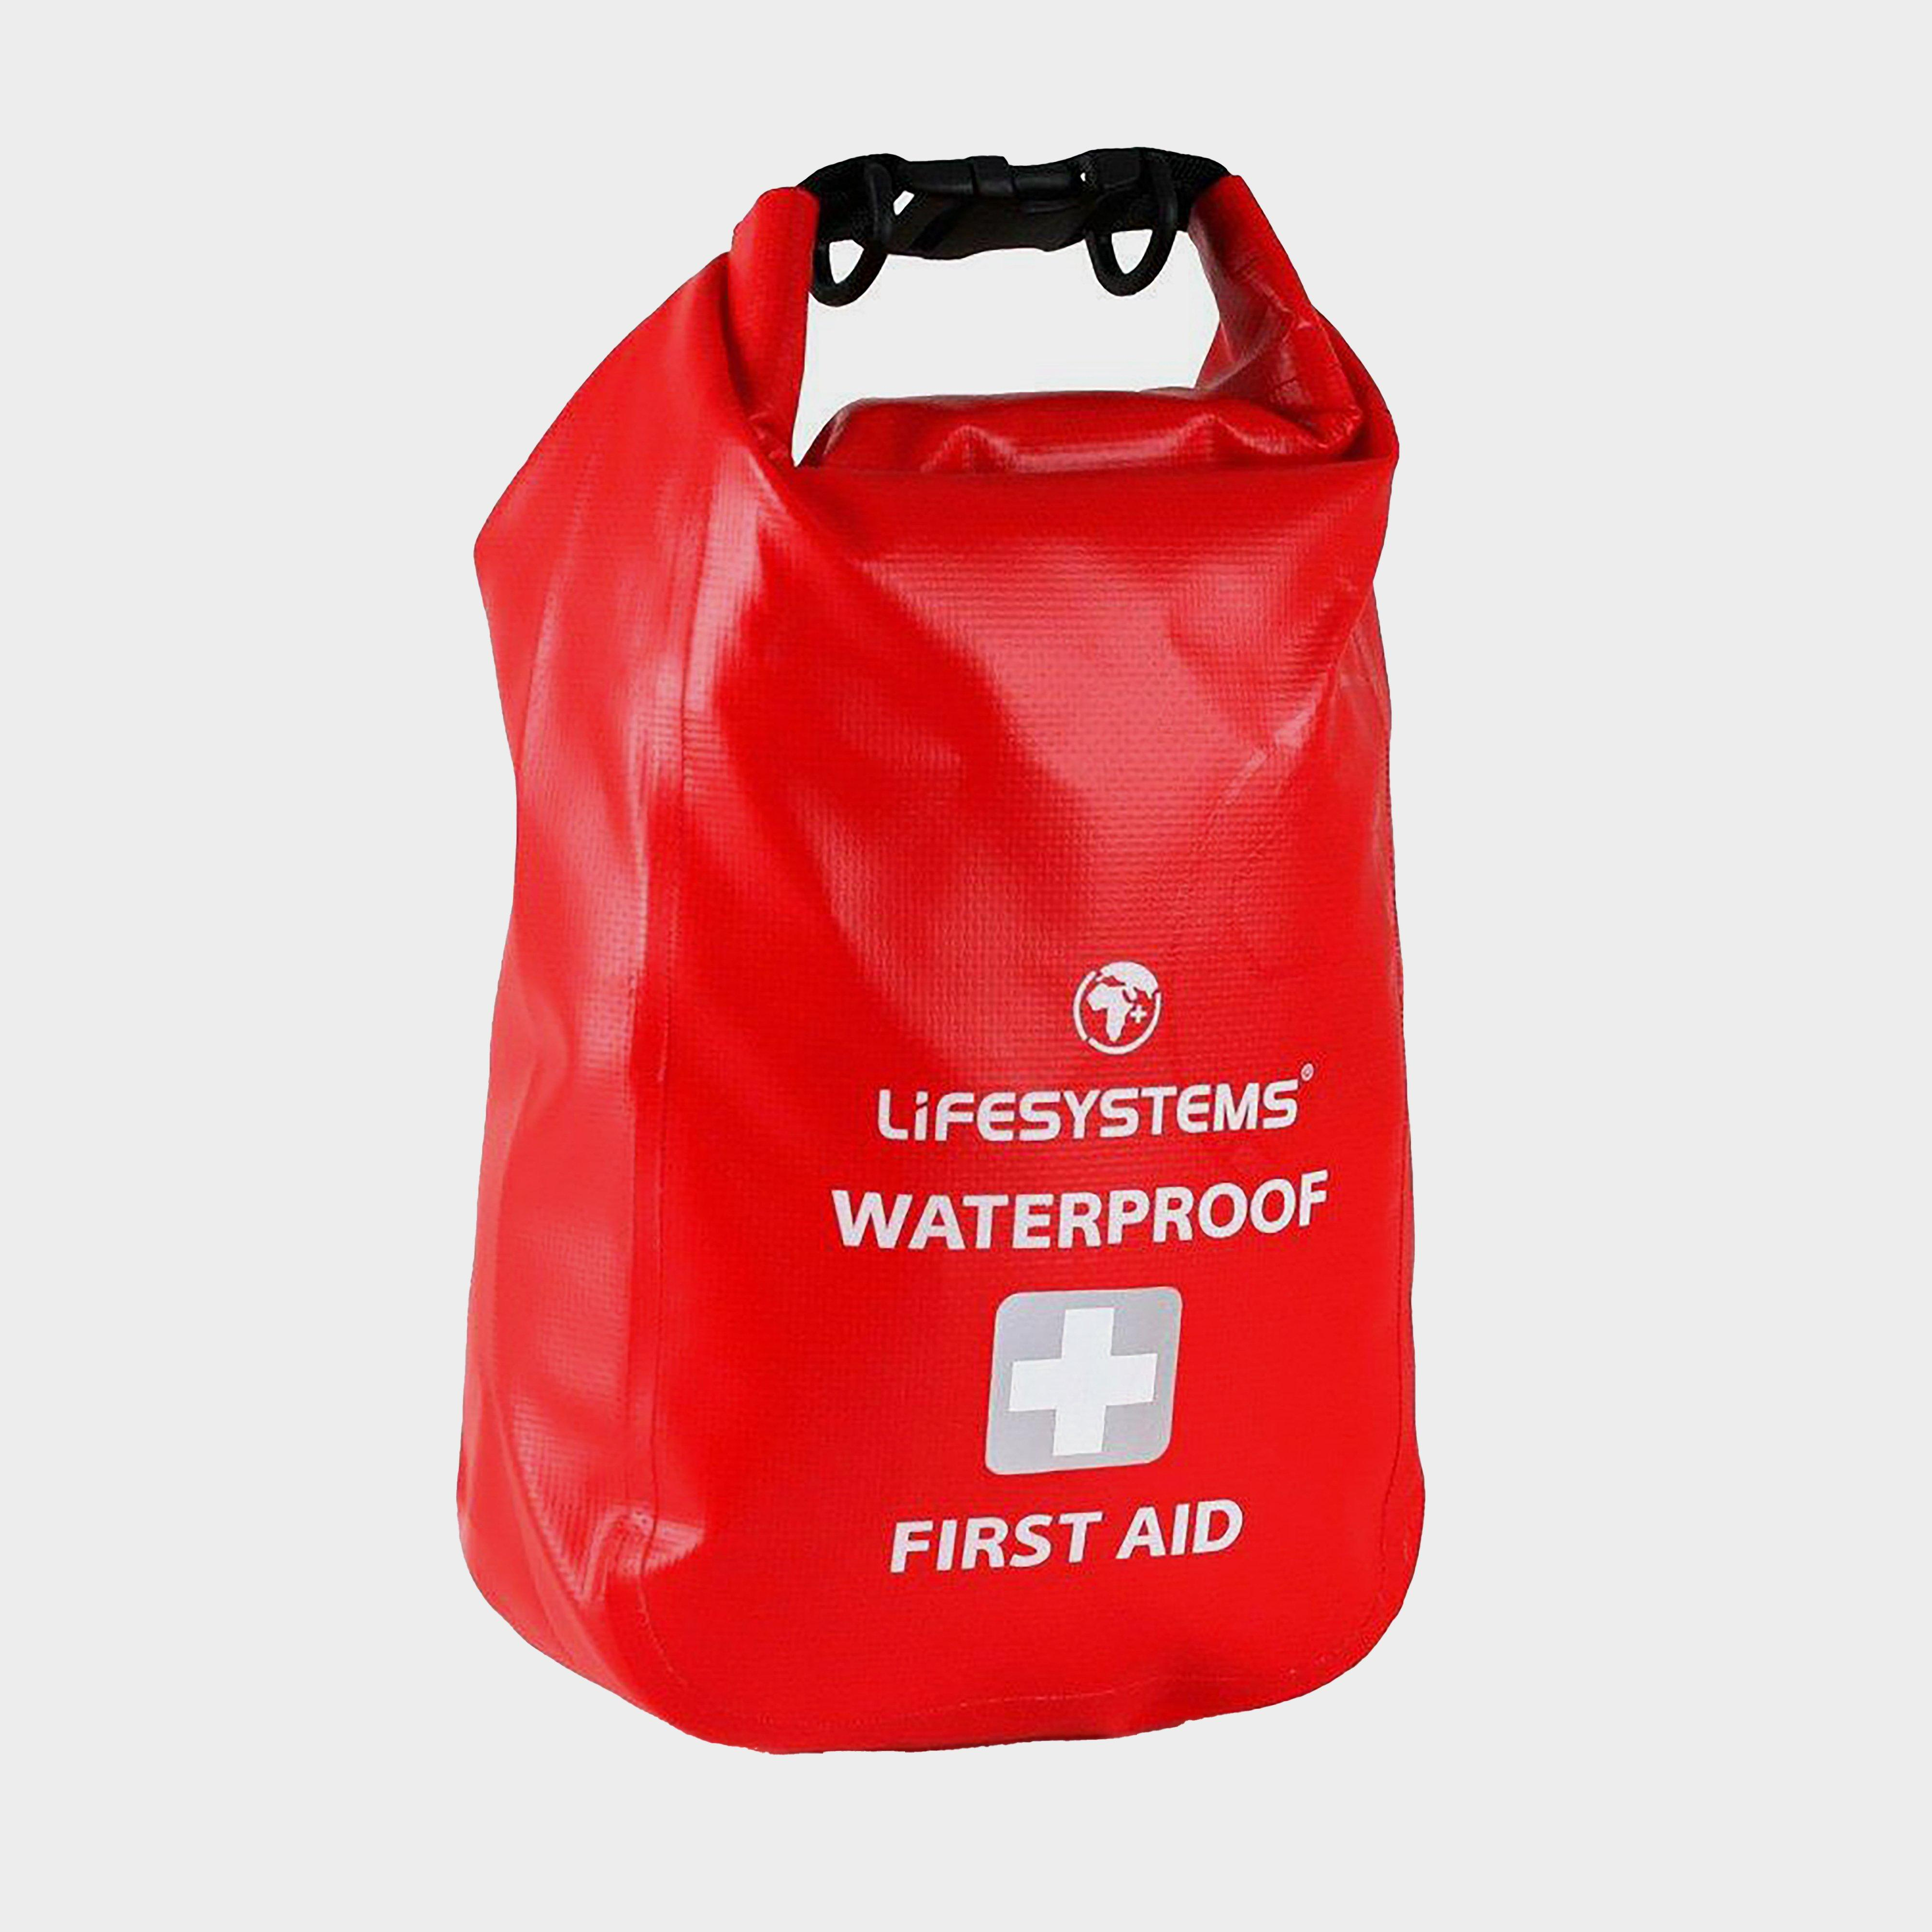 Lifesystems Lifesystems Waterproof First Aid Kit - N/A, N/A